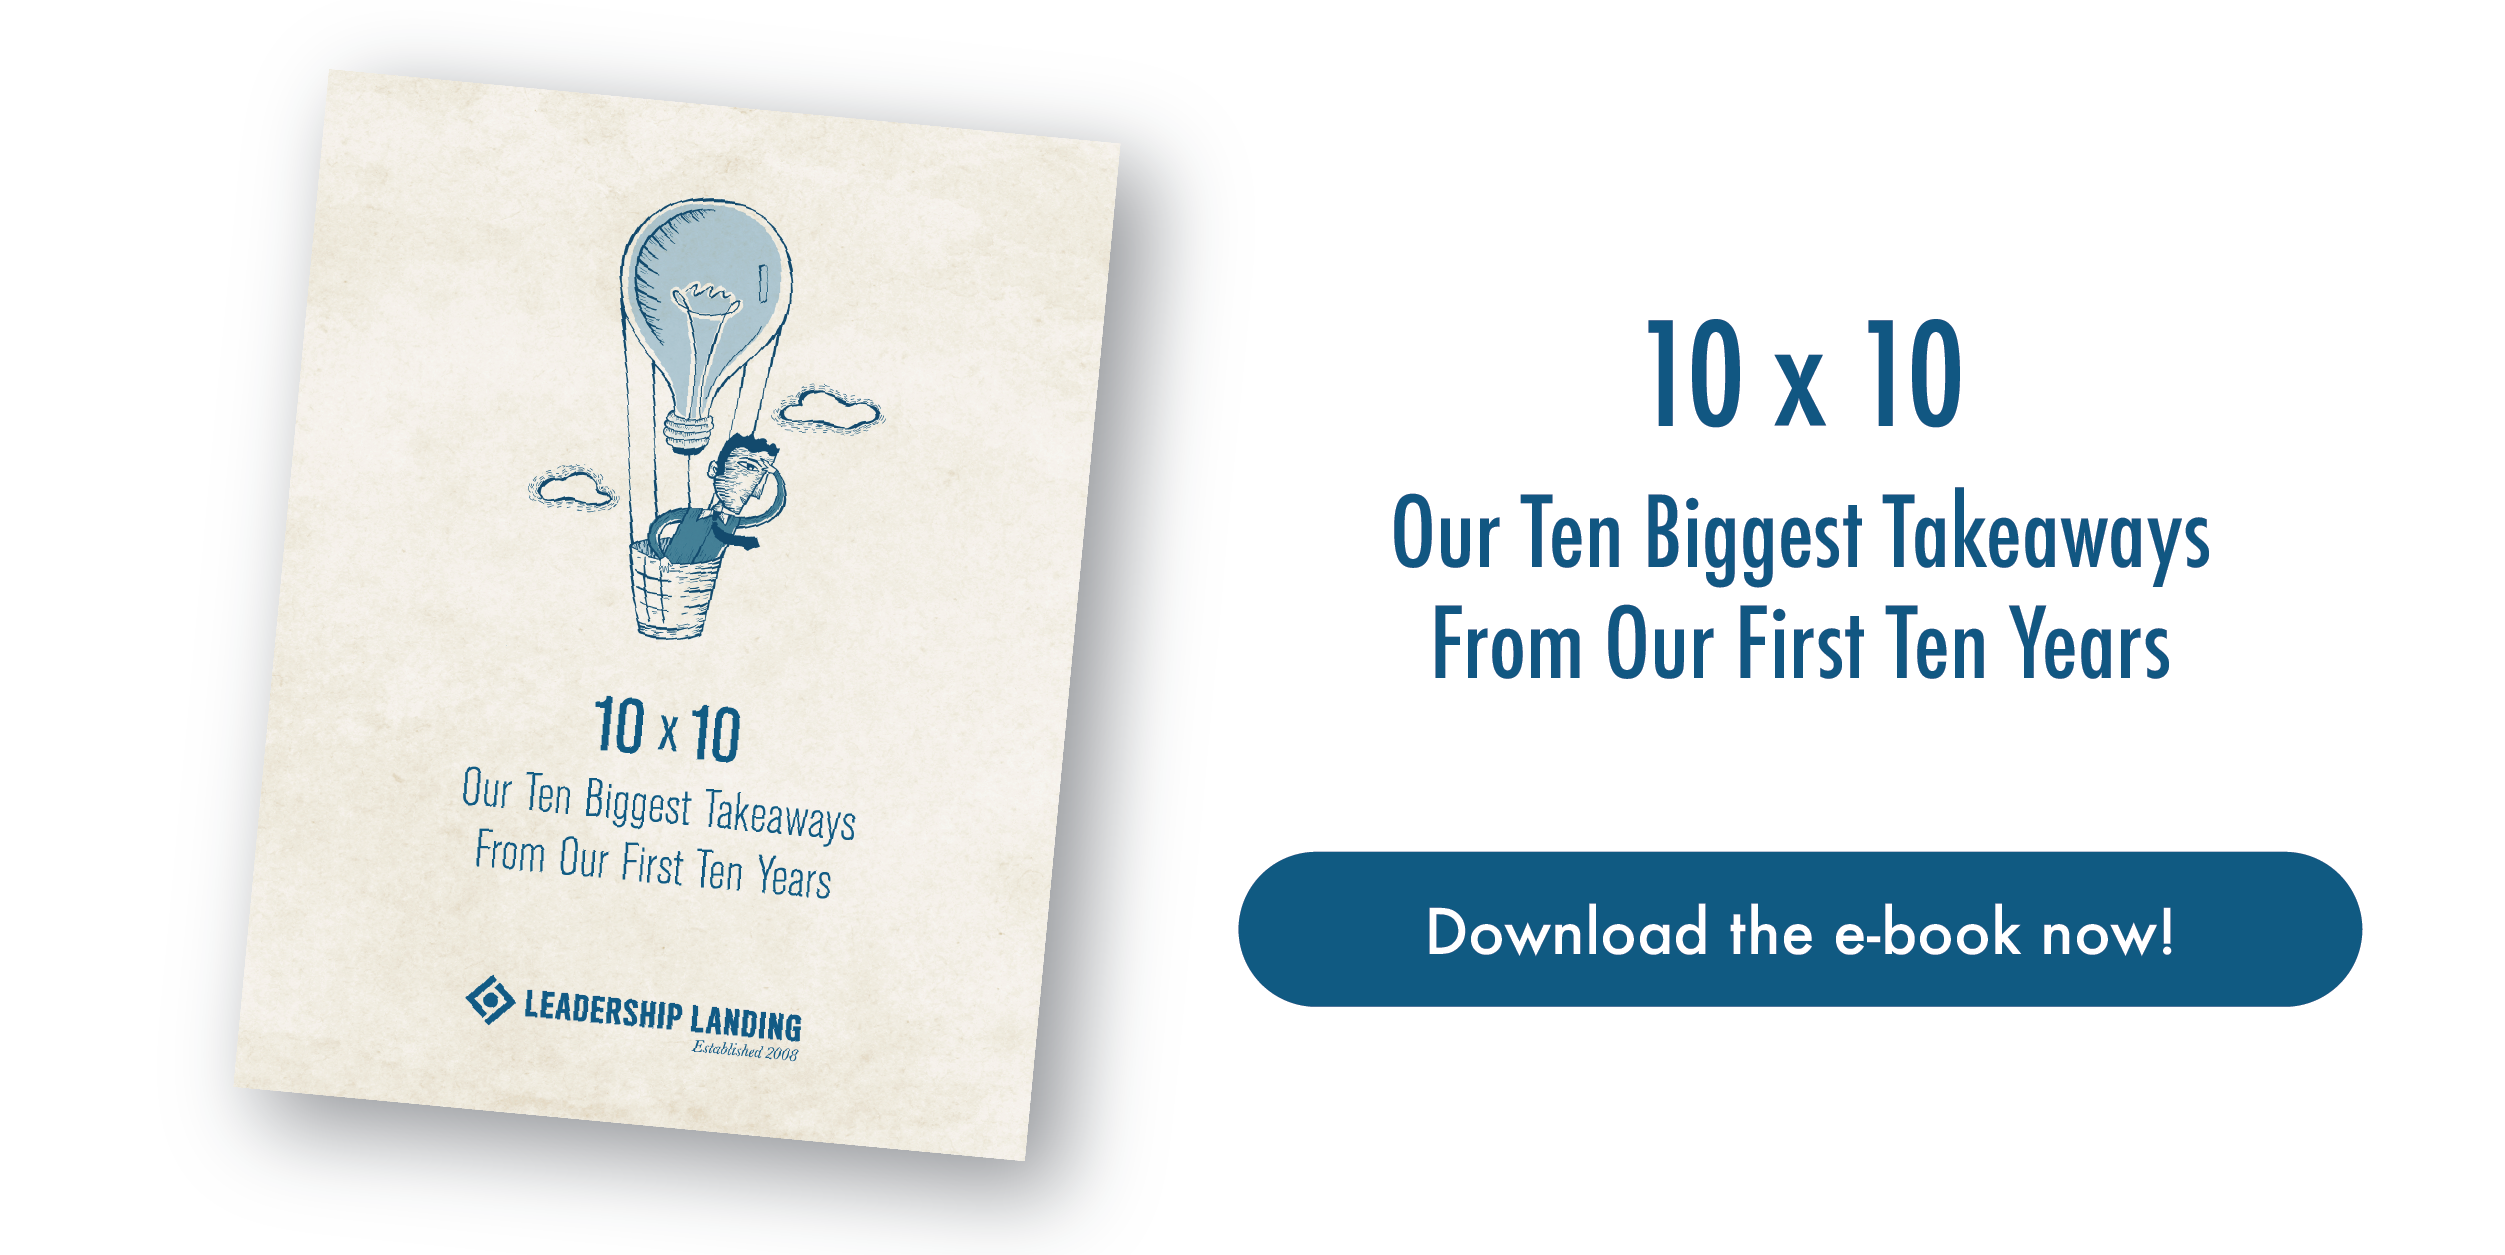 LL email, 10x10 download ad, 2019-2-18